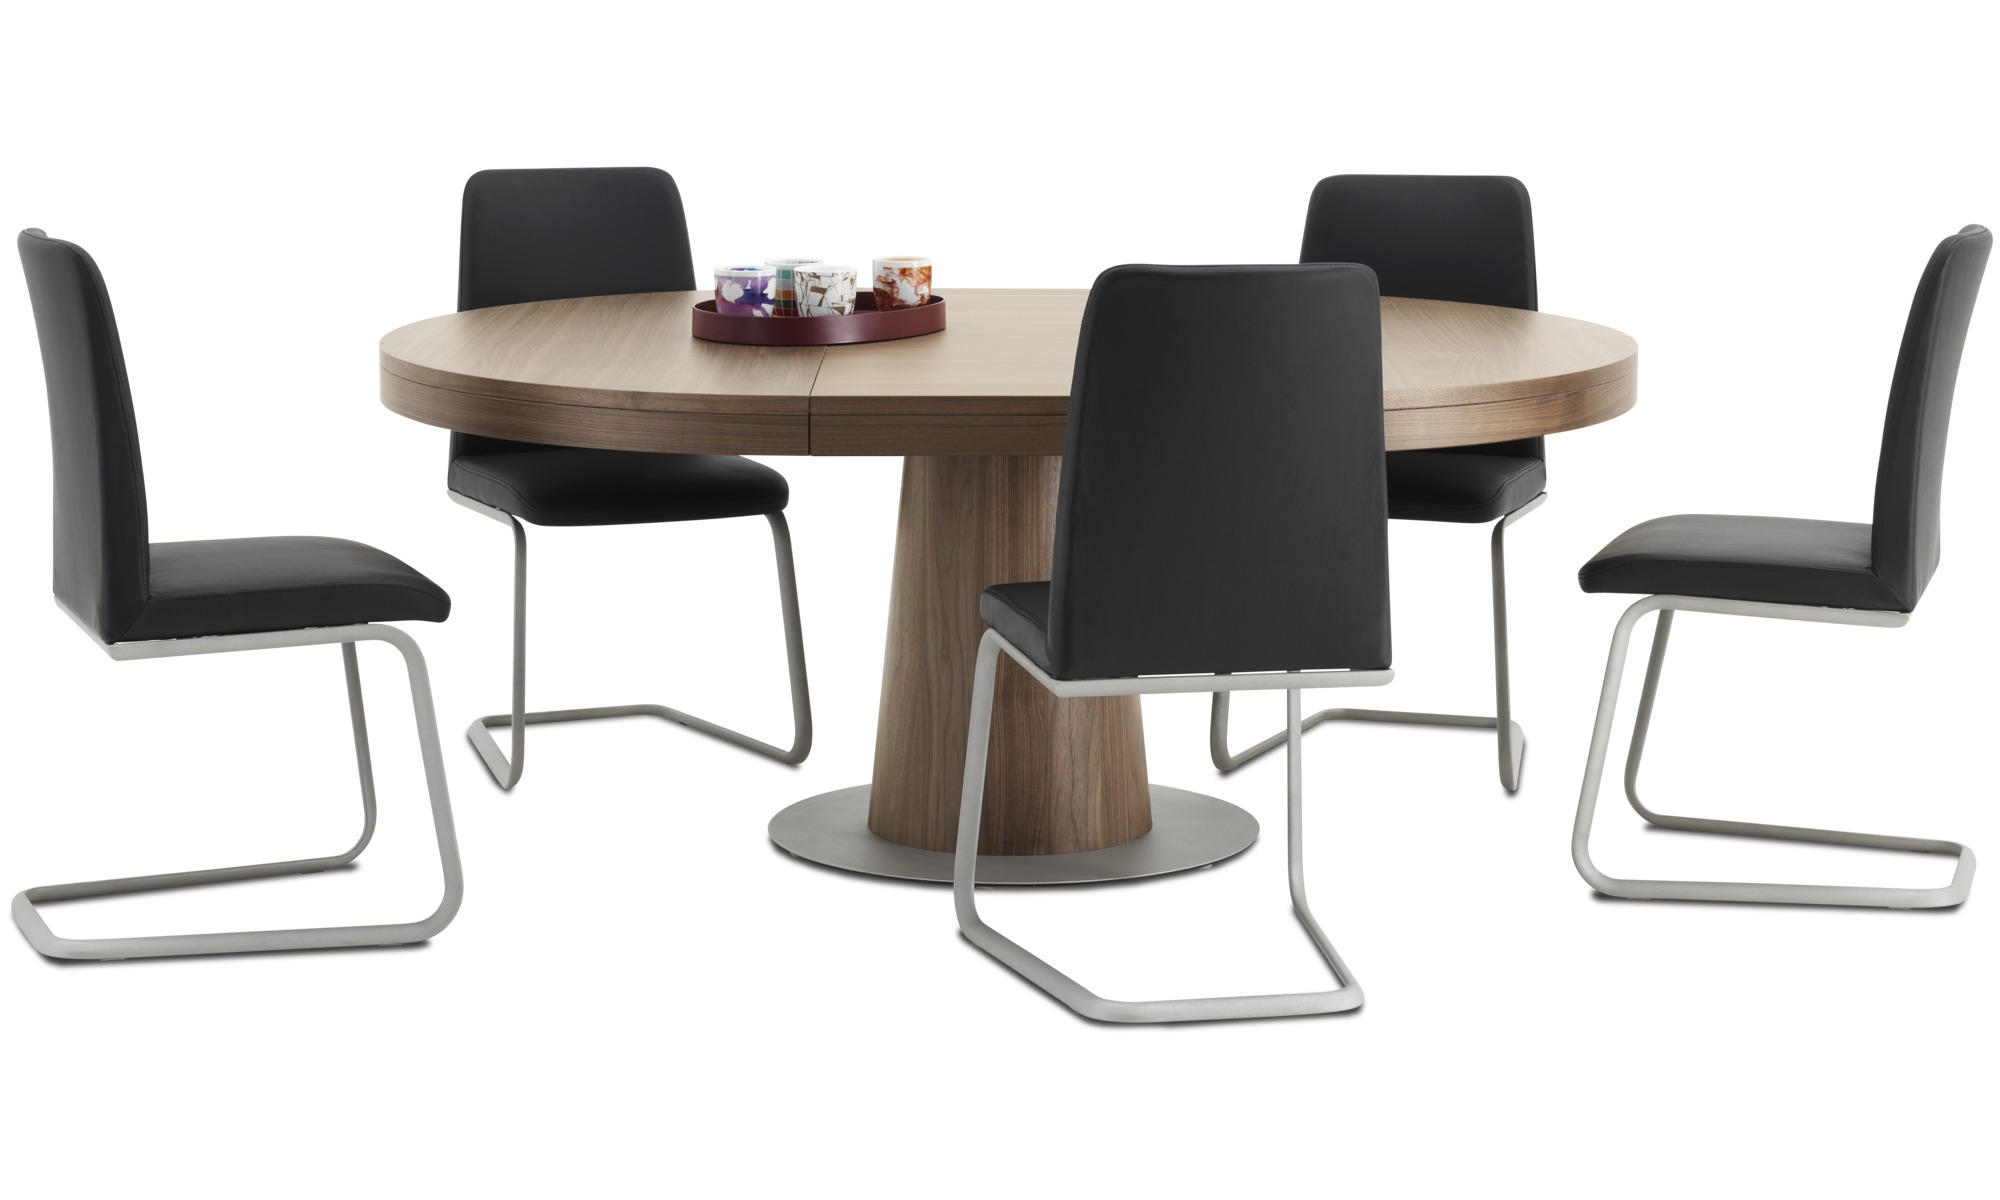 Bo Concept Dining Table Extendable Dining Table By  : 24273 from amlibgroup.com size 2000 x 1200 jpeg 149kB